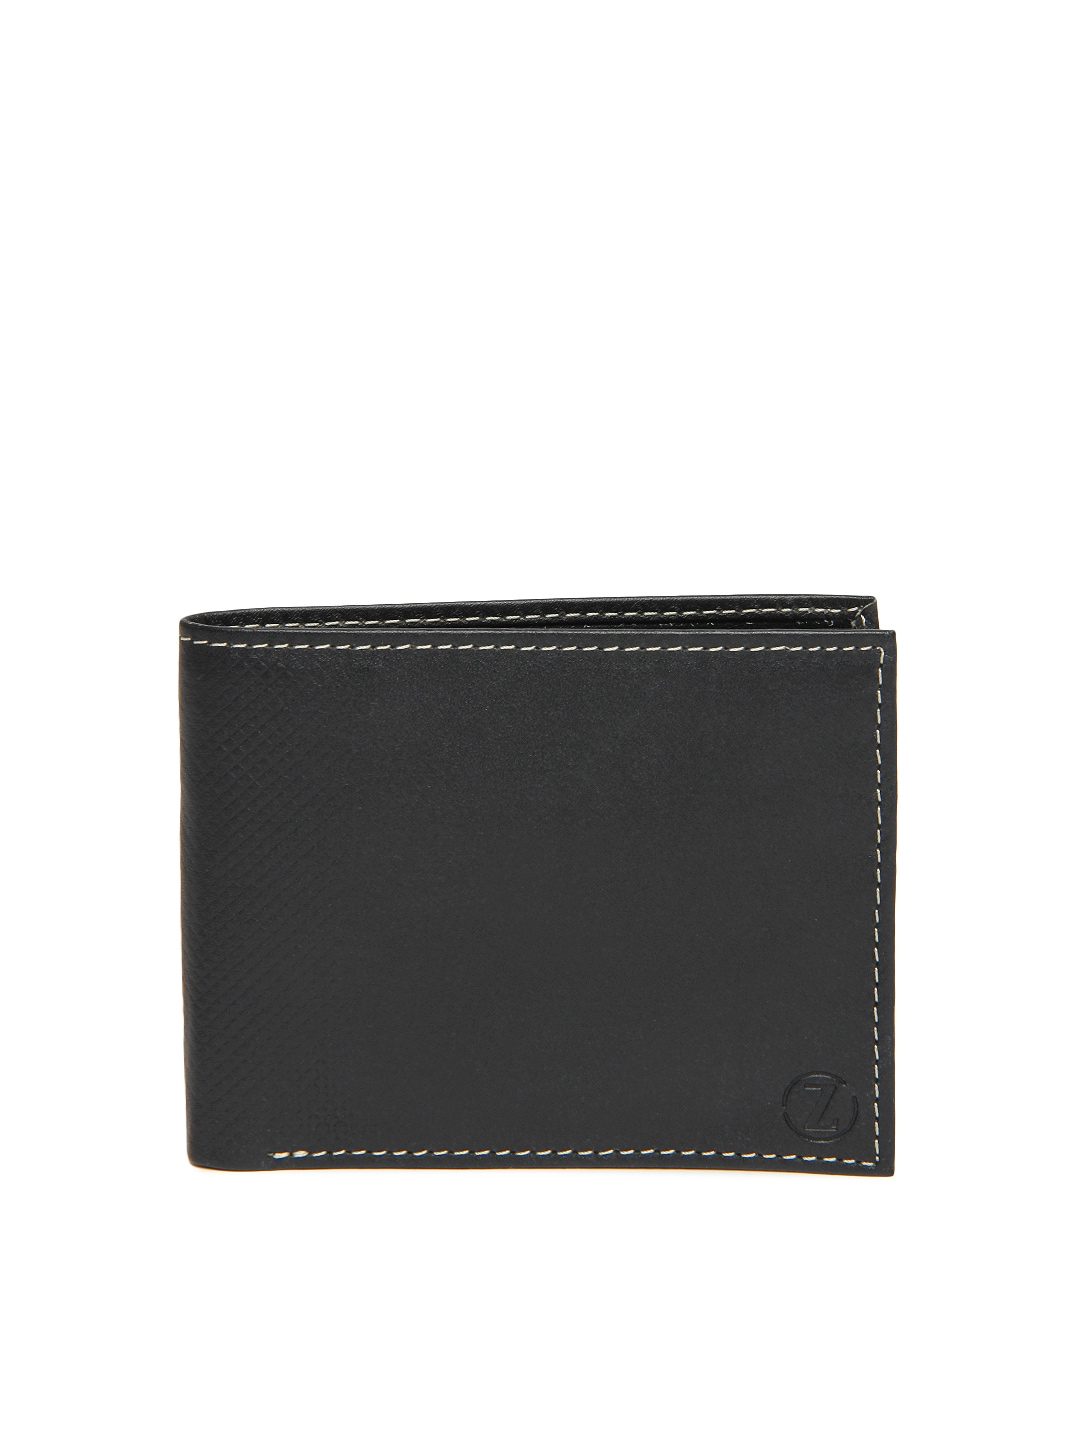 tZaro Men Black Leather Wallet